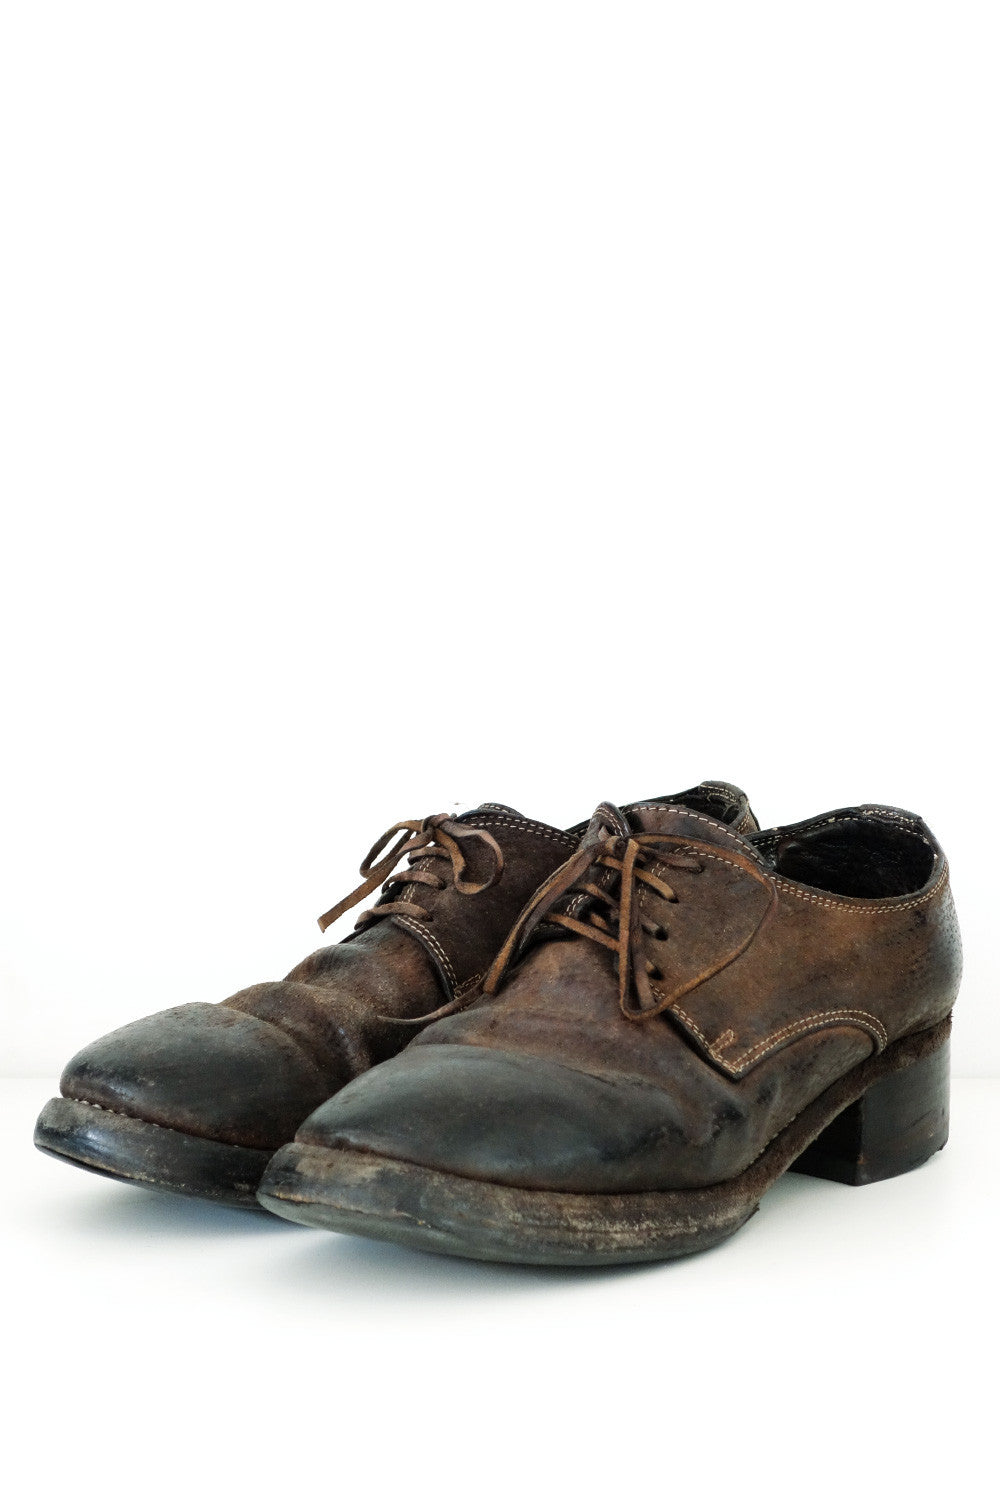 Guidi Leather Derbies Sz 37.5